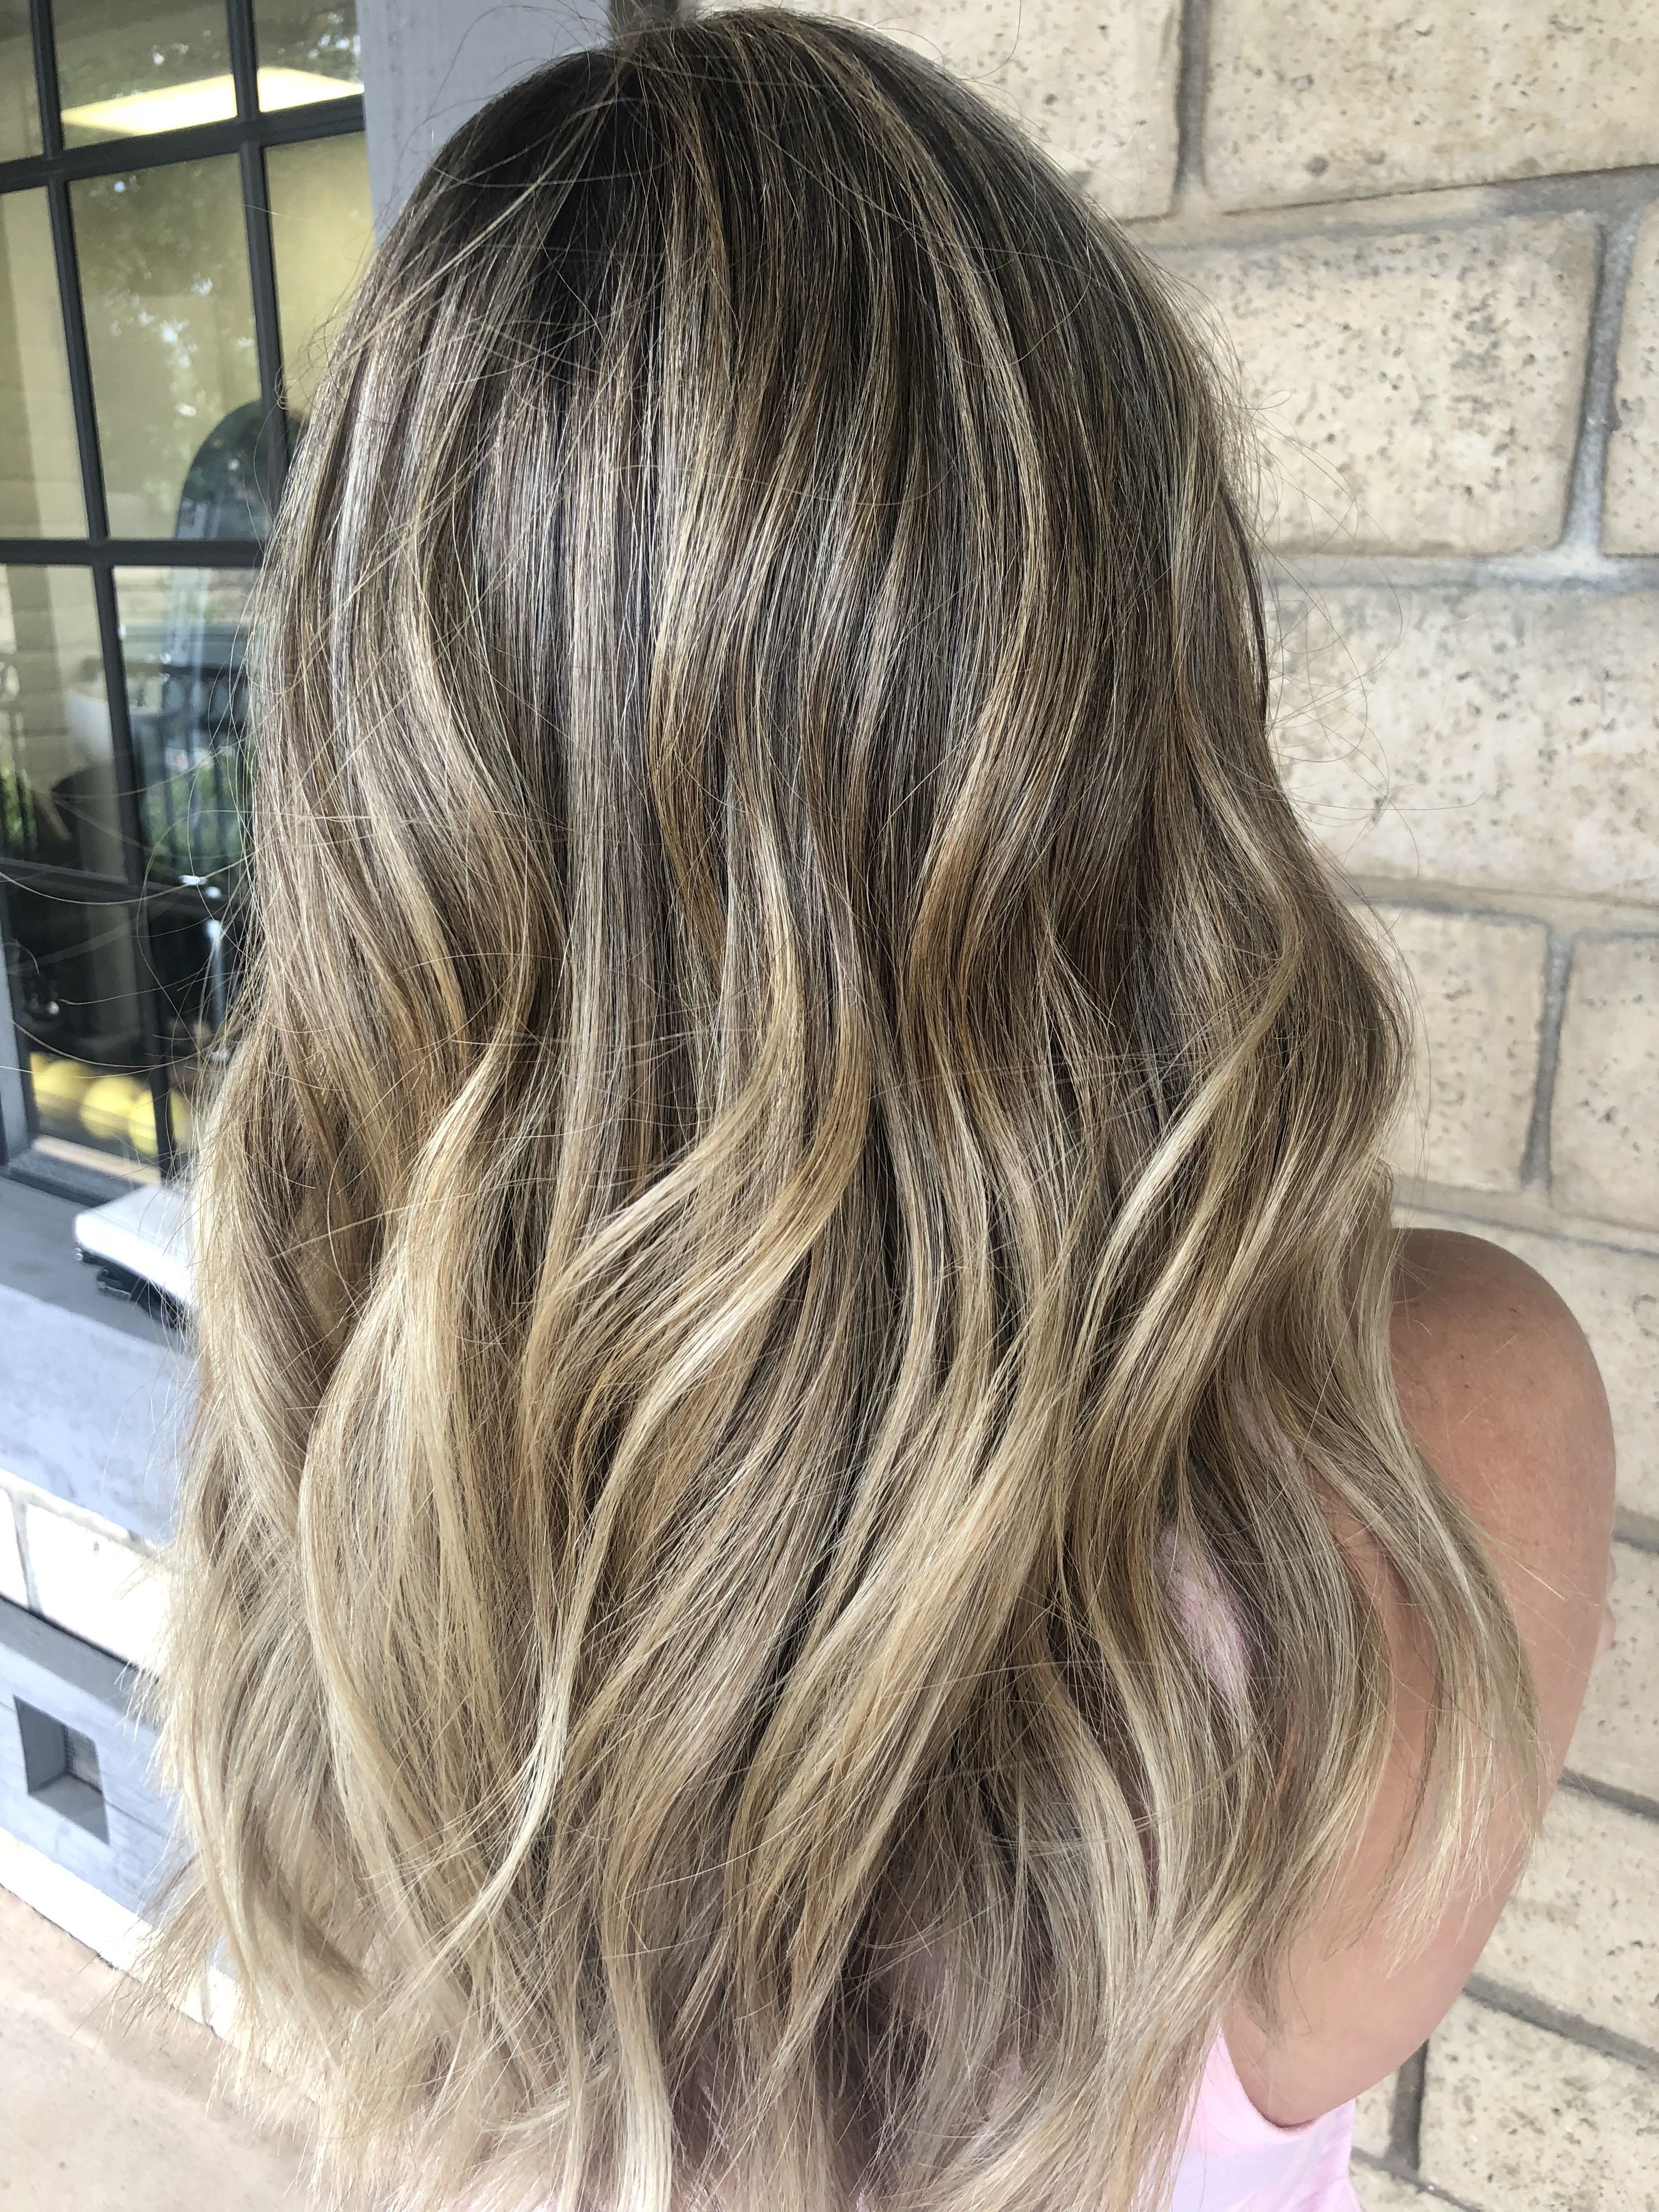 Hairbyjayleen Blonde Hair With Roots Blonde Hair Color Hair Inspiration Color